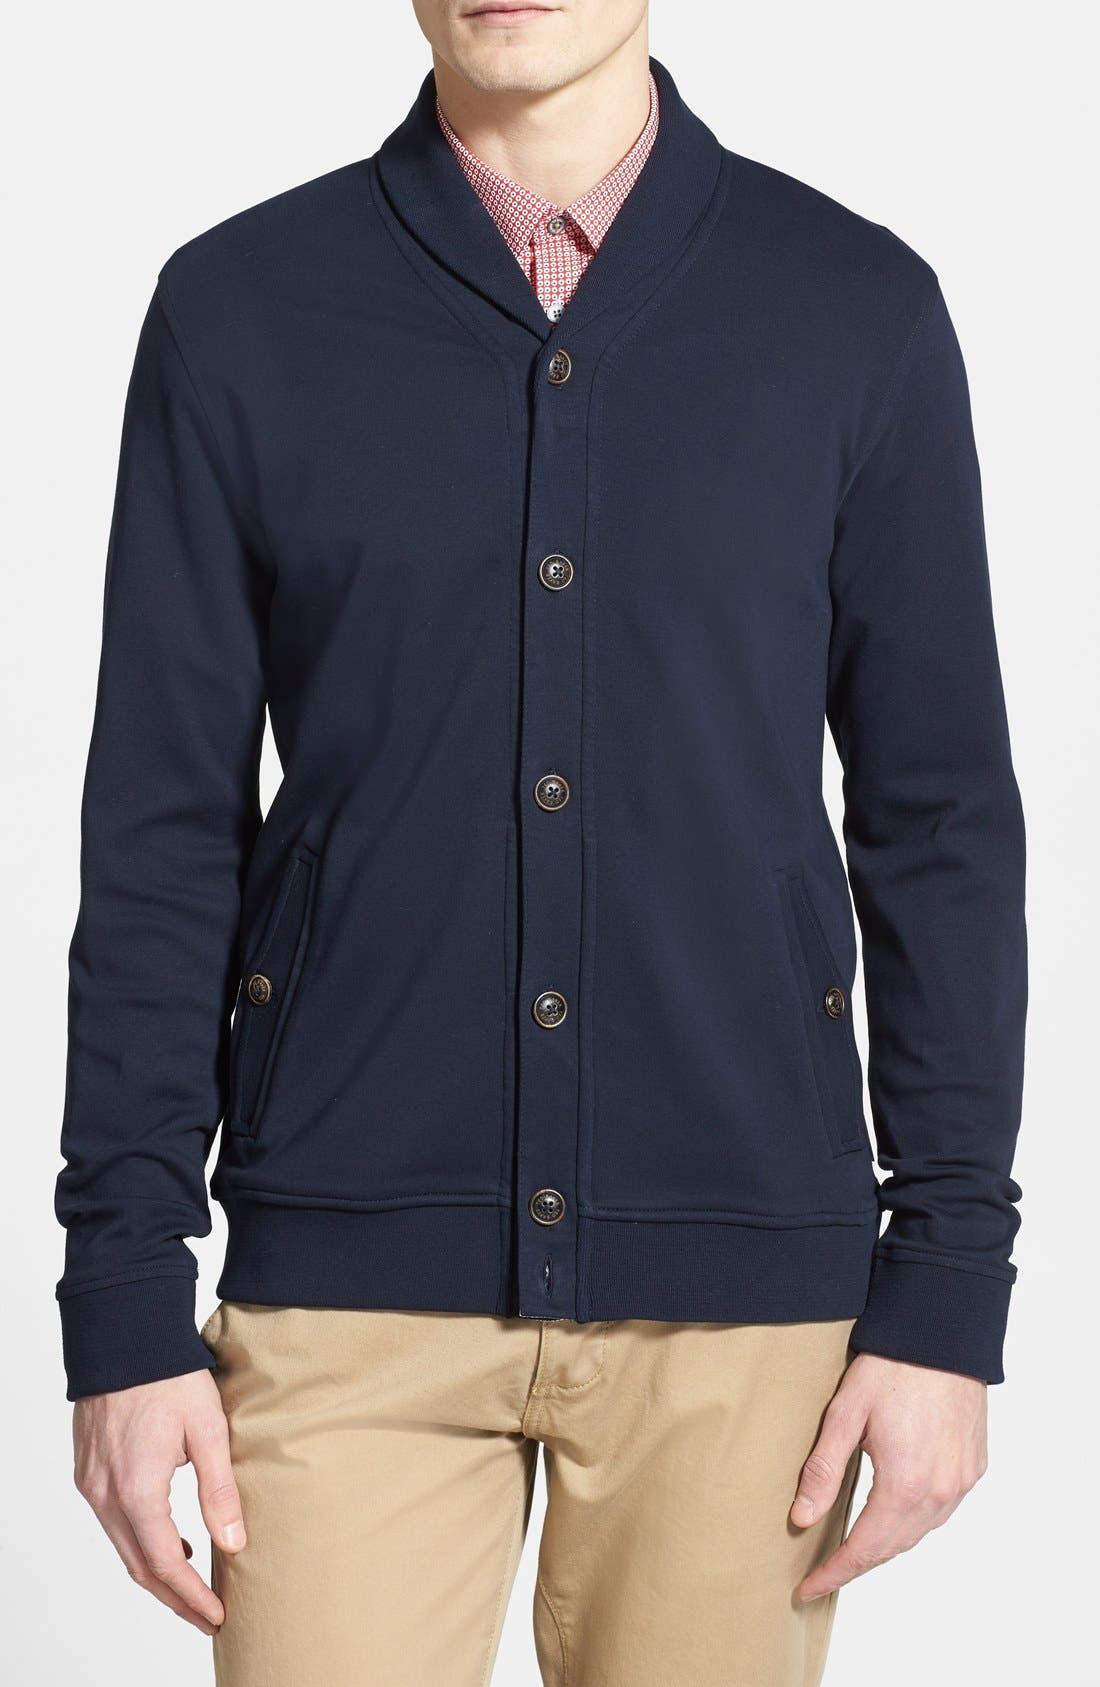 Main Image - Ted Baker London 'Norre' Cardigan